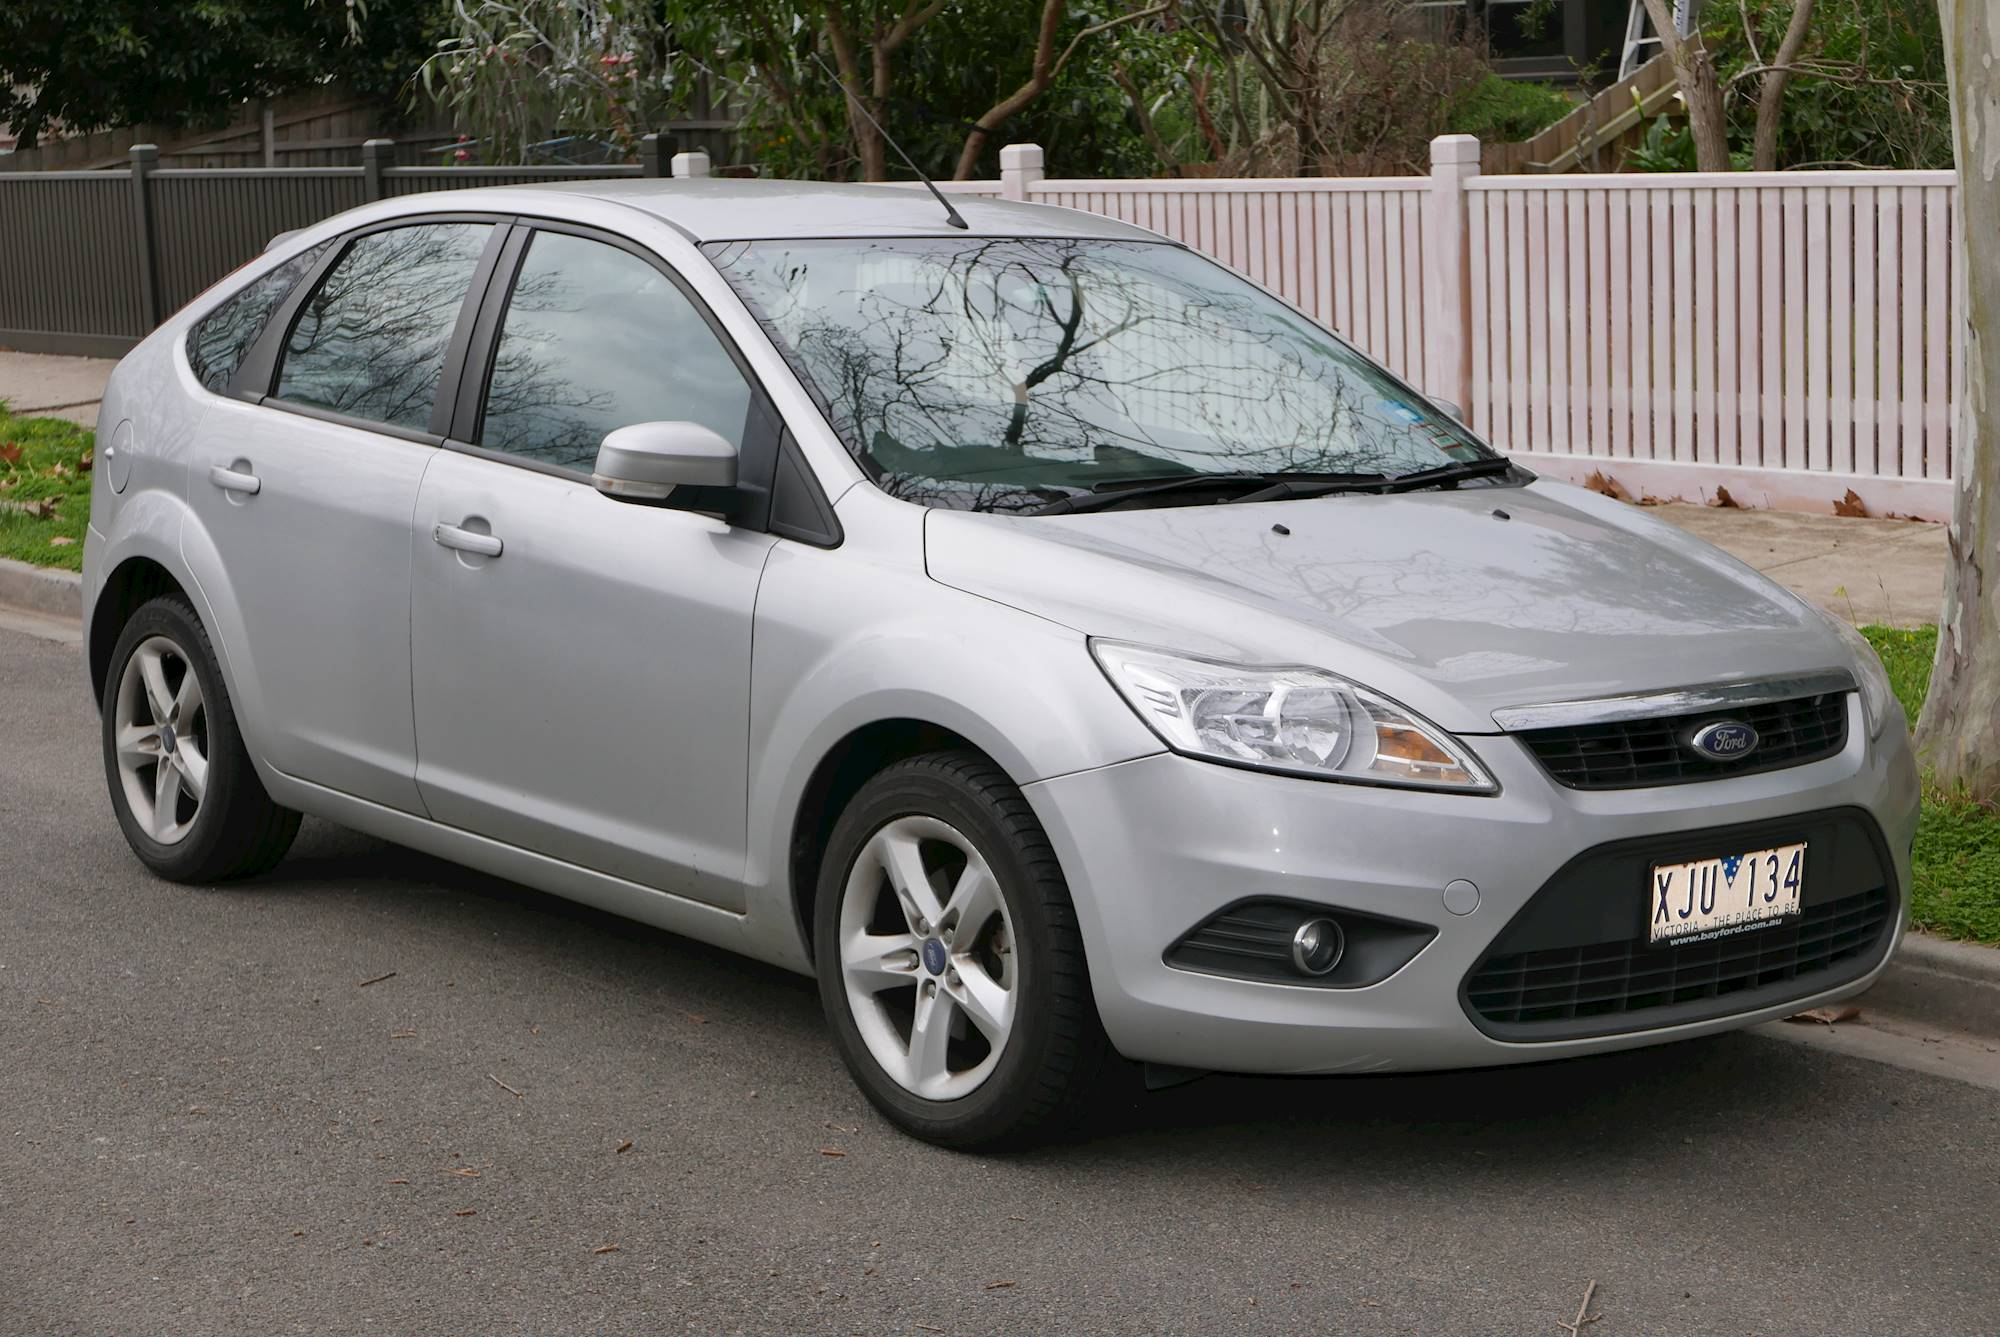 2009 ford focus se 4dr sedan 5 spd manual w od. Black Bedroom Furniture Sets. Home Design Ideas